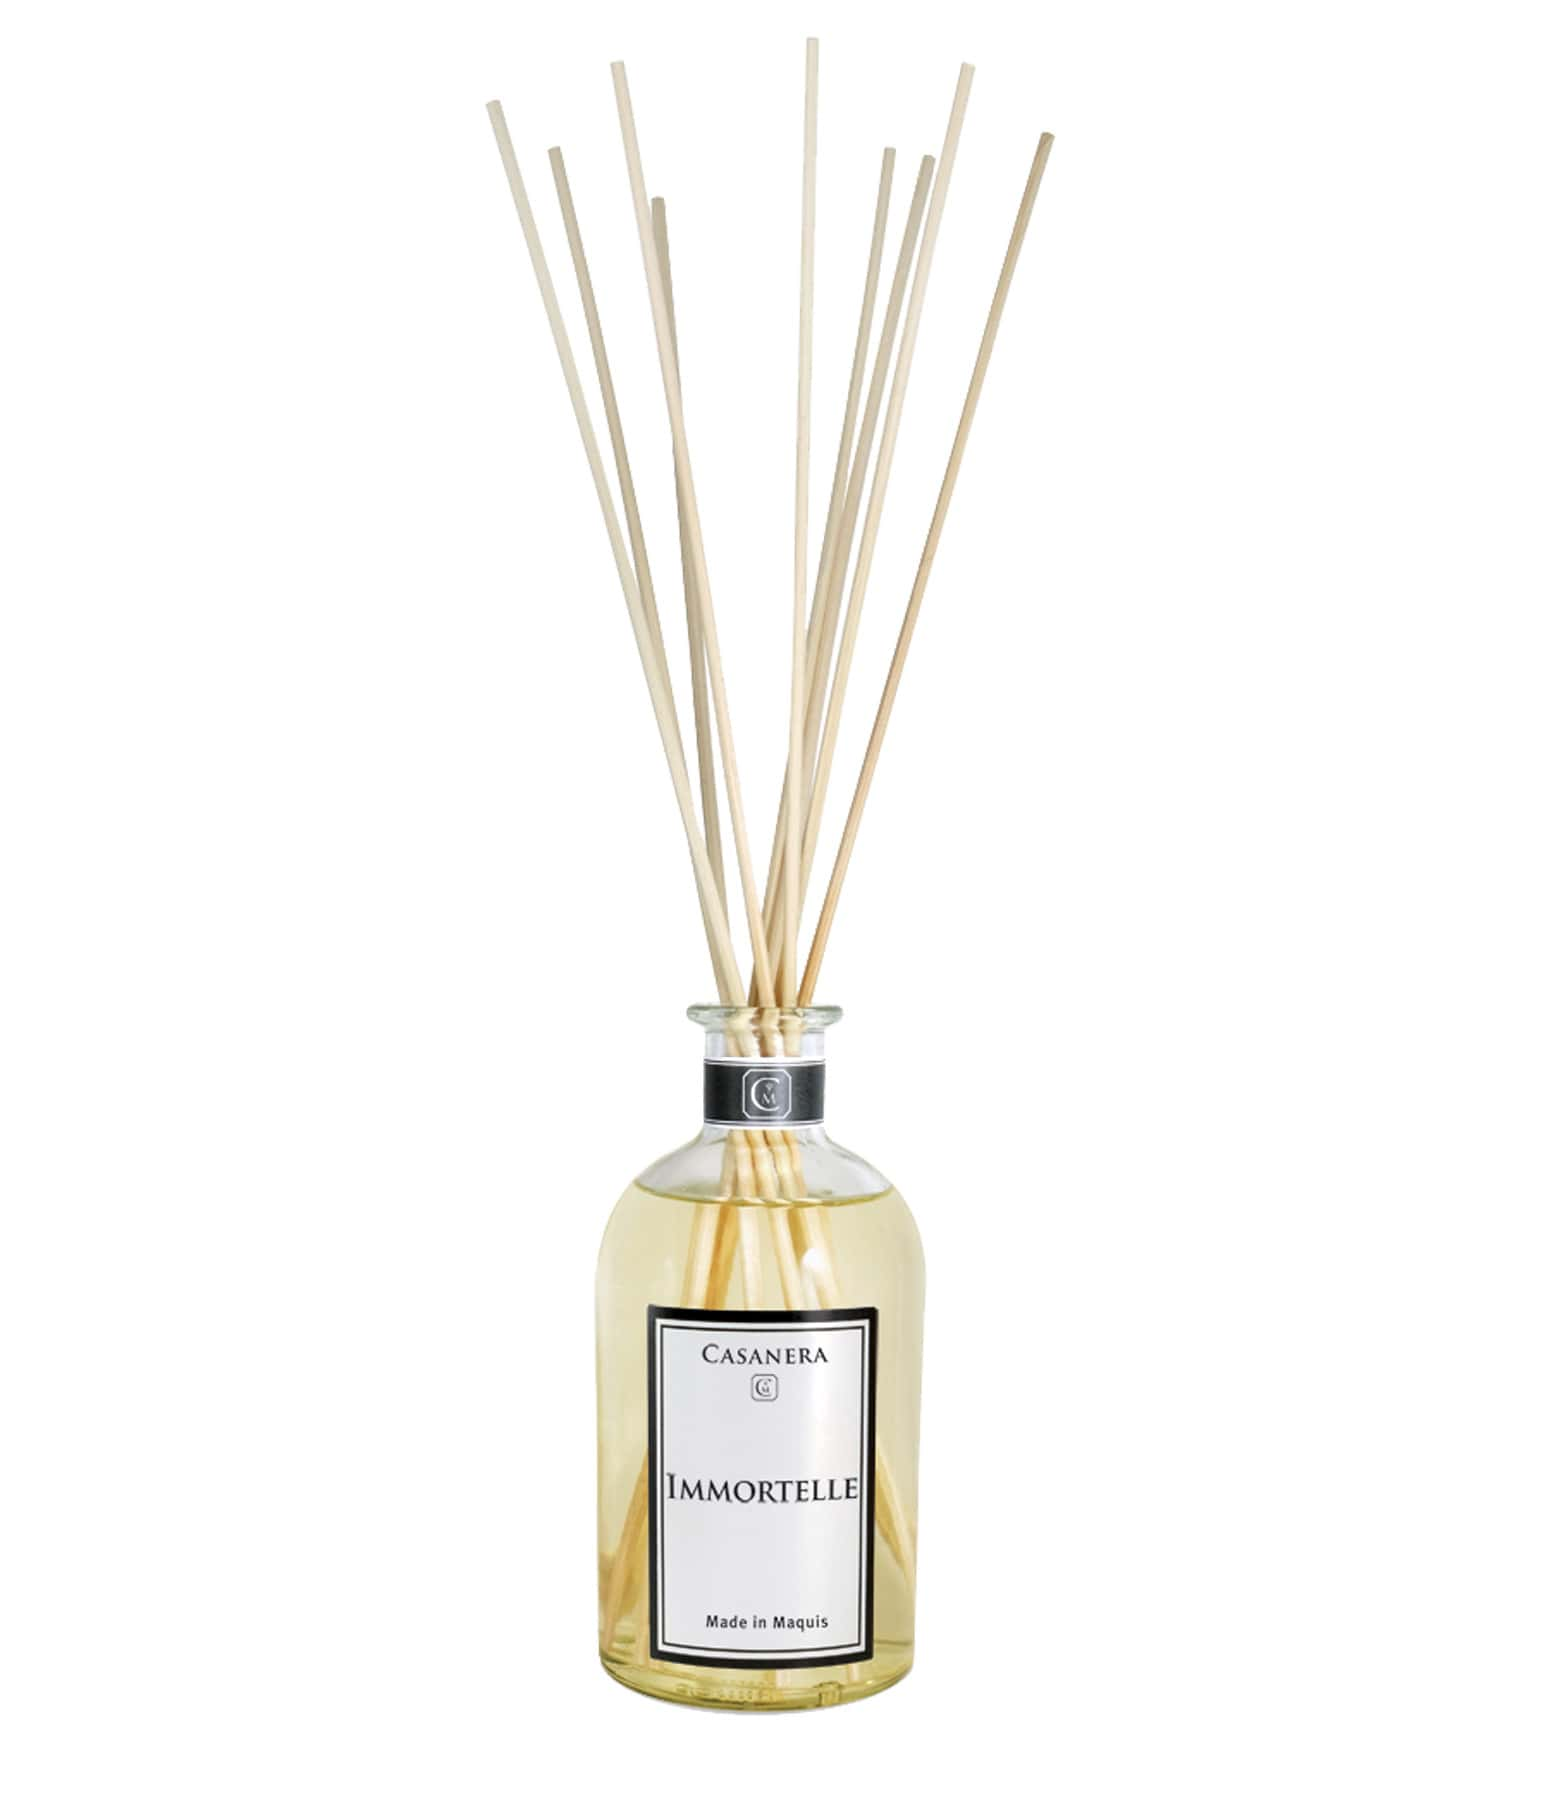 CASANERA - Diffuseur Immortelle 250ml